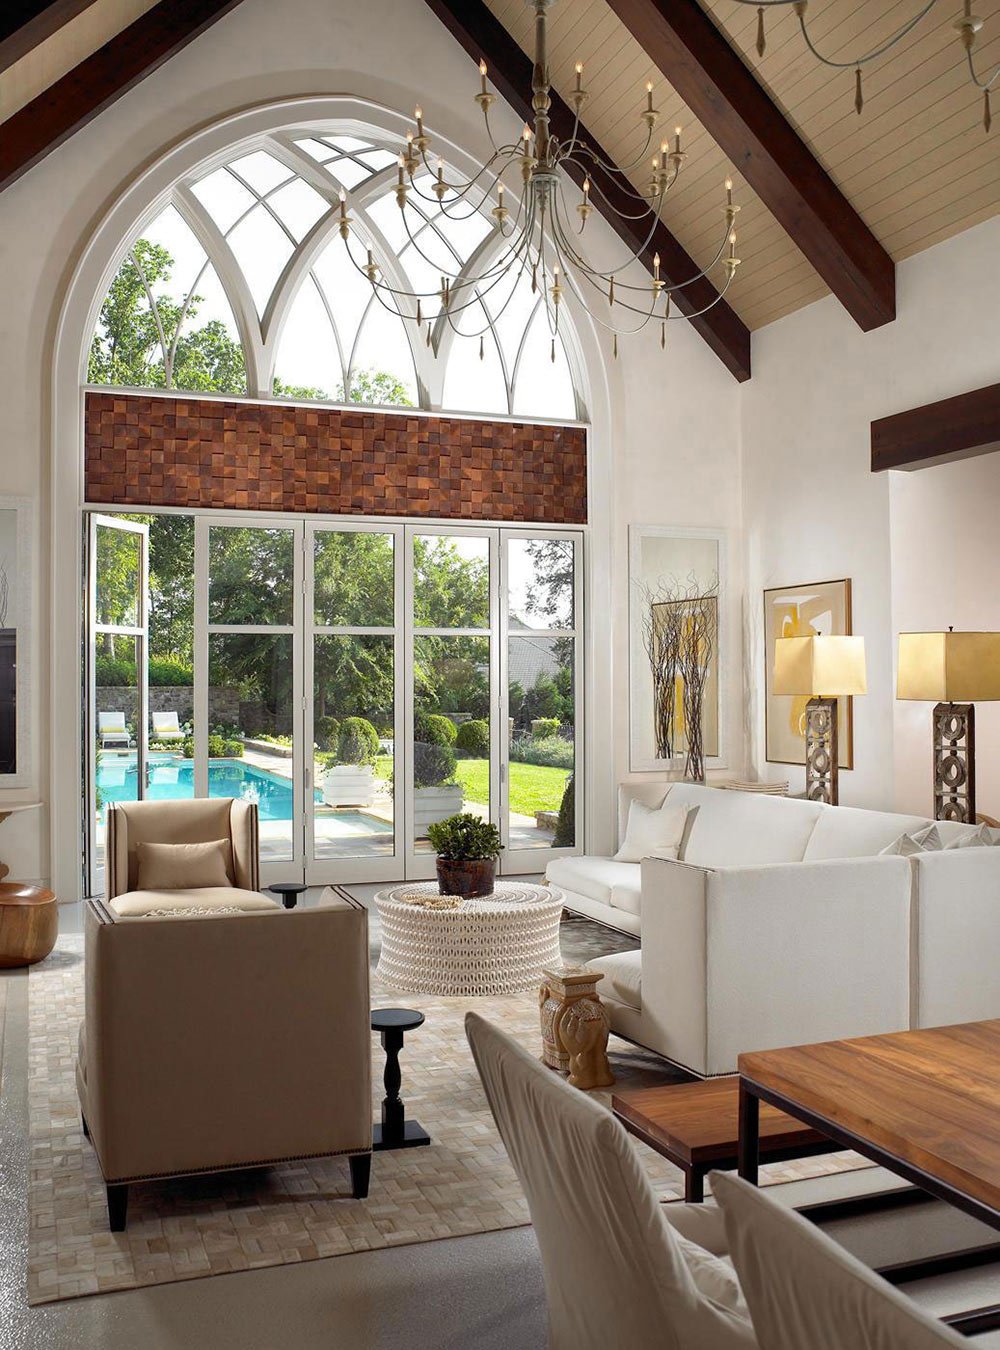 Living Space, Pool House & Wine Cellar in Nashville, Tennessee by Beckwith Interiors